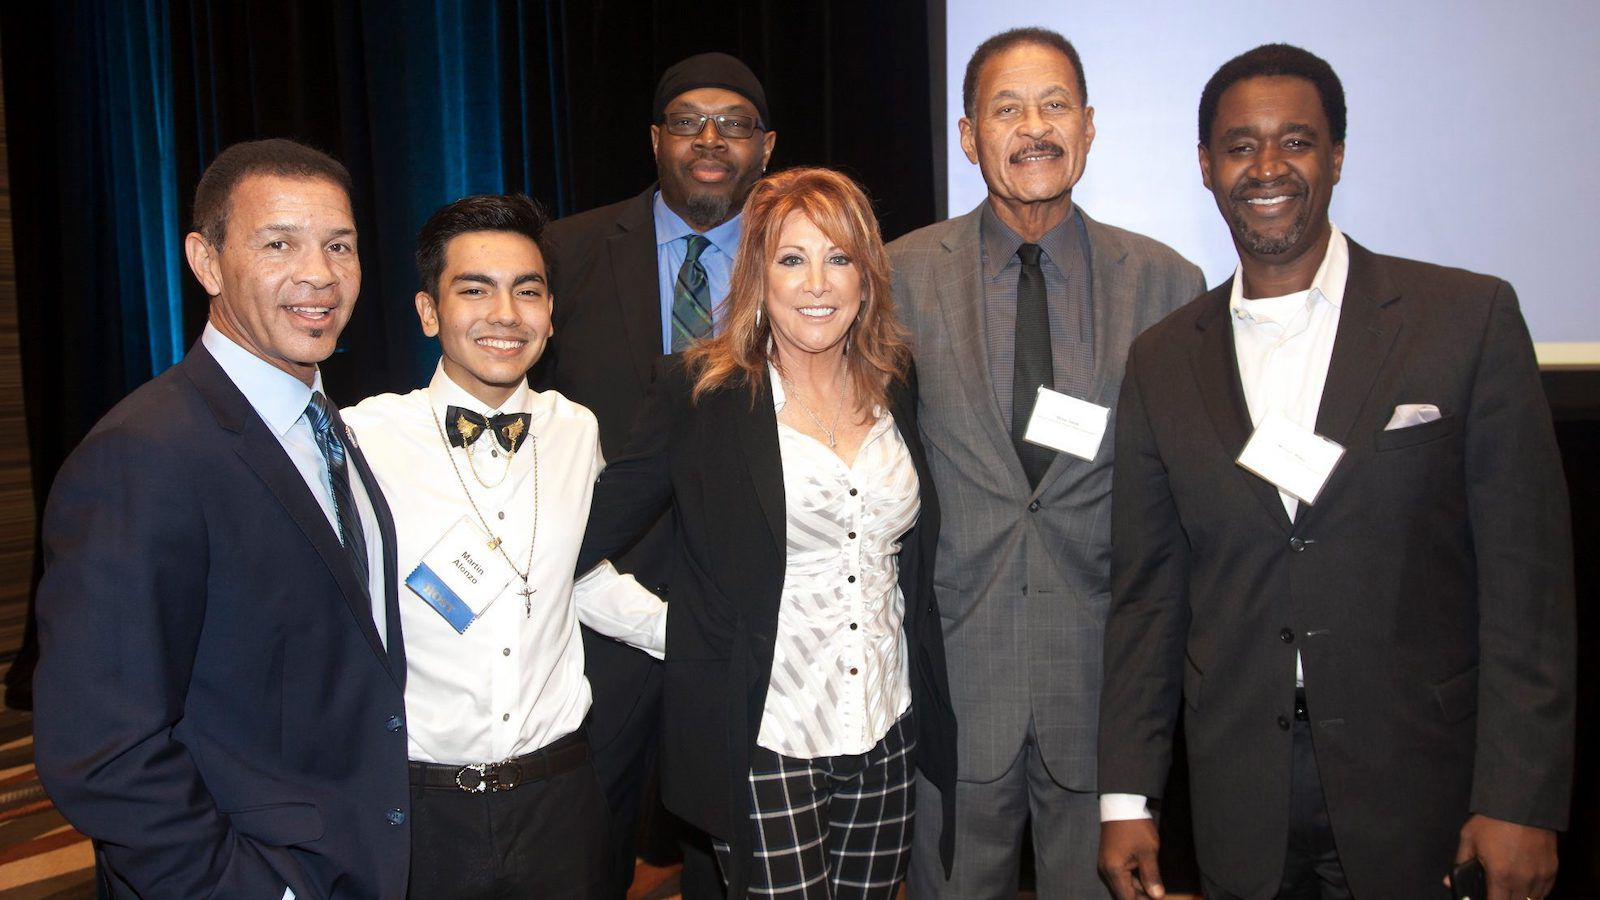 Nancy Lieberman was emcee for the All Stars Development School for Youth spring graduation on May 14. The event was virtual, but Lieberman has long been a partner of the program.